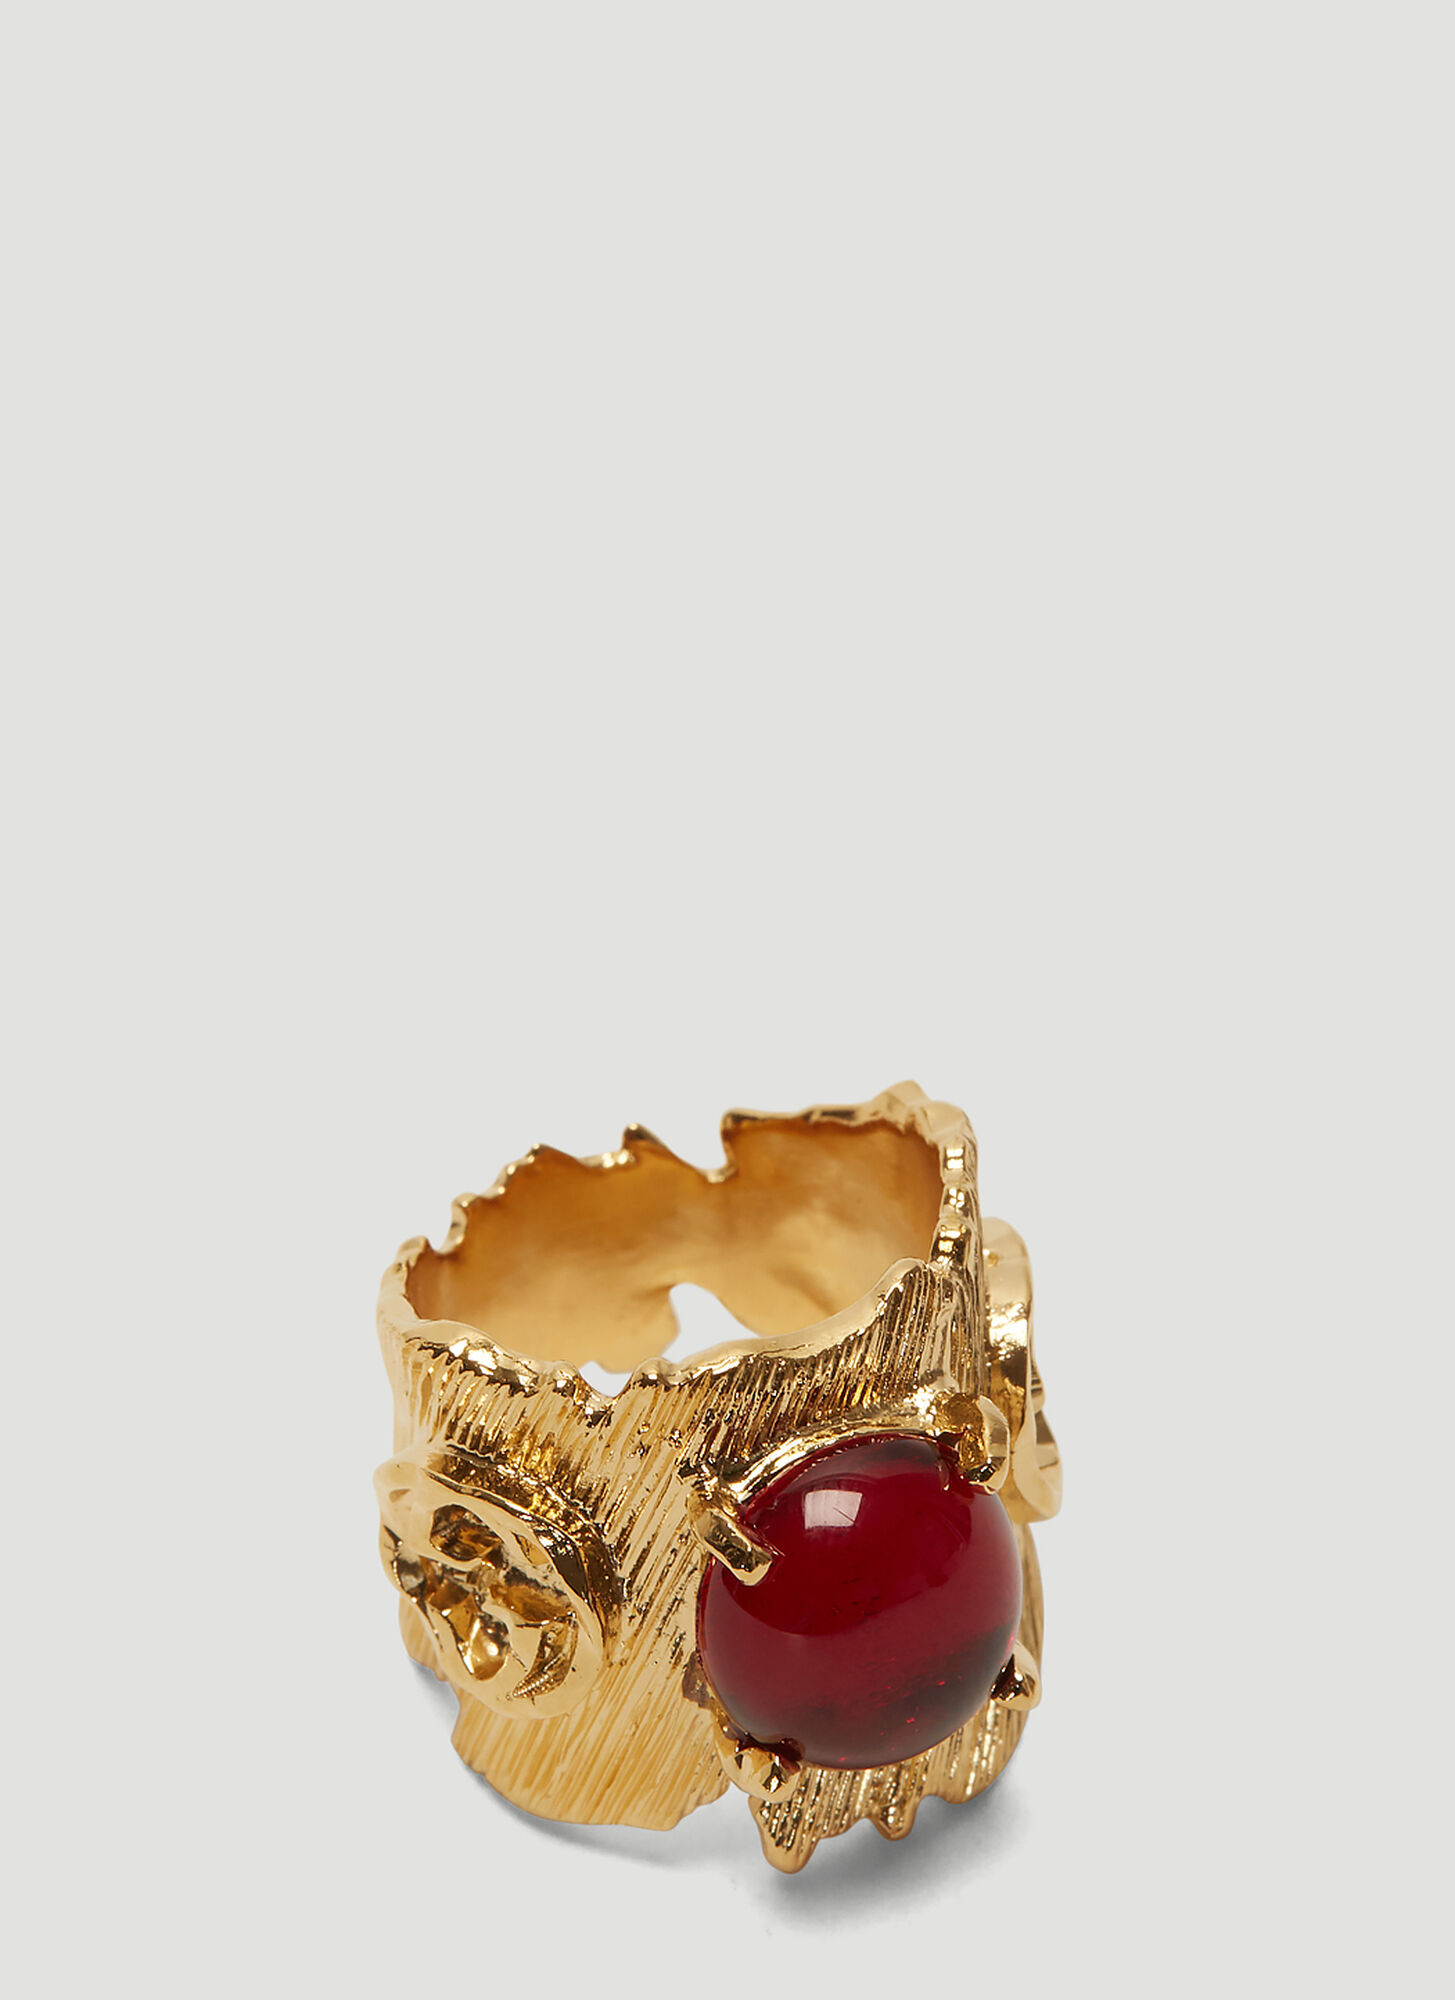 Gucci Textured Ring in Gold